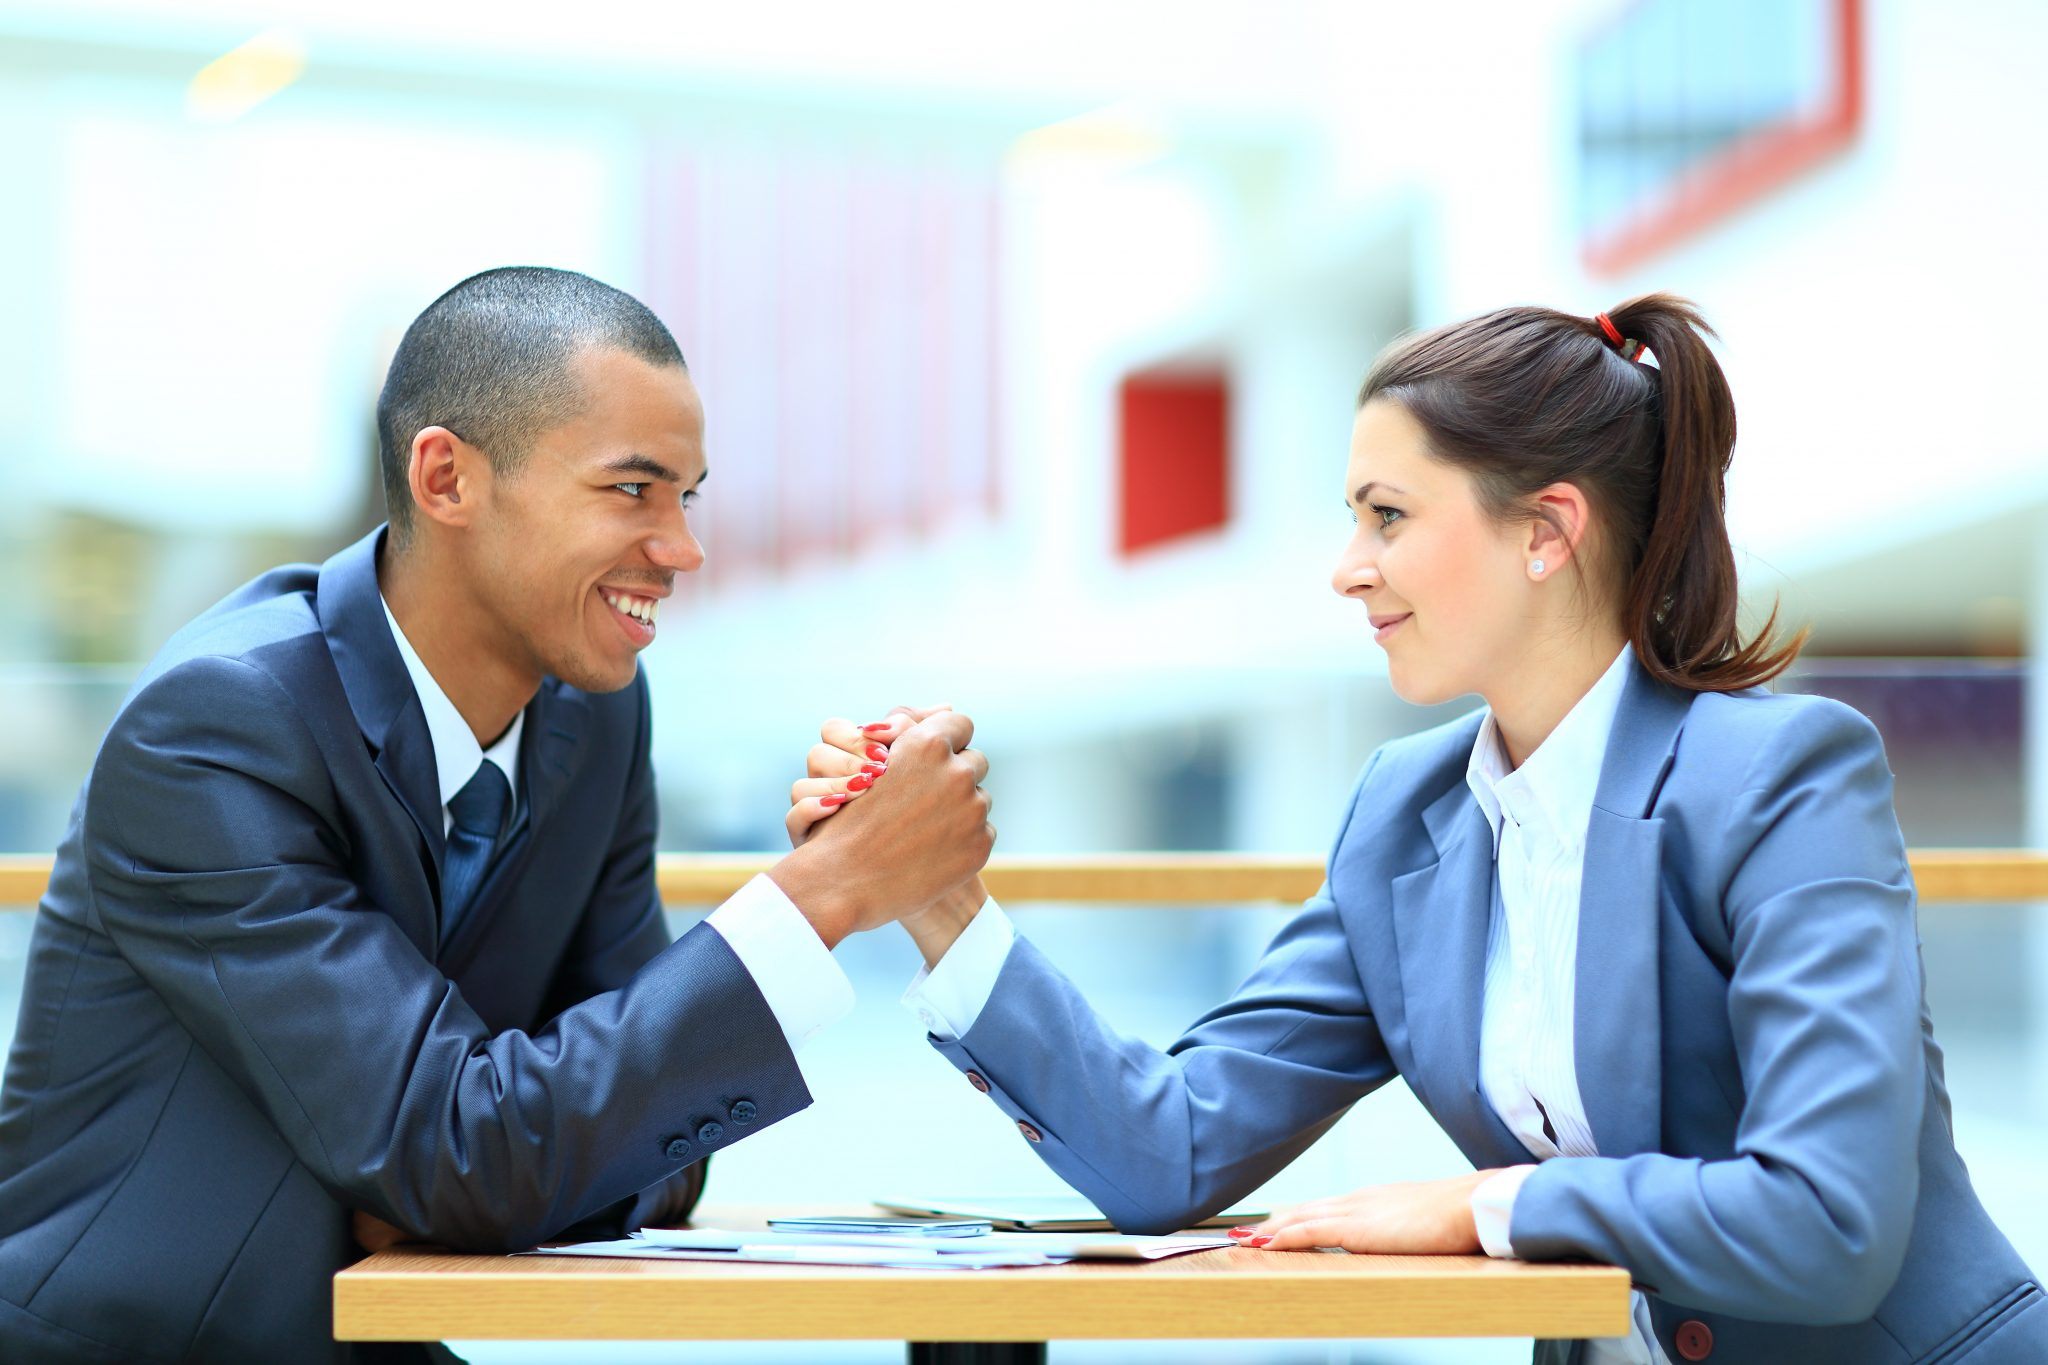 7 Tips for Resolving Conflicts at Work Quickly and Peacefully